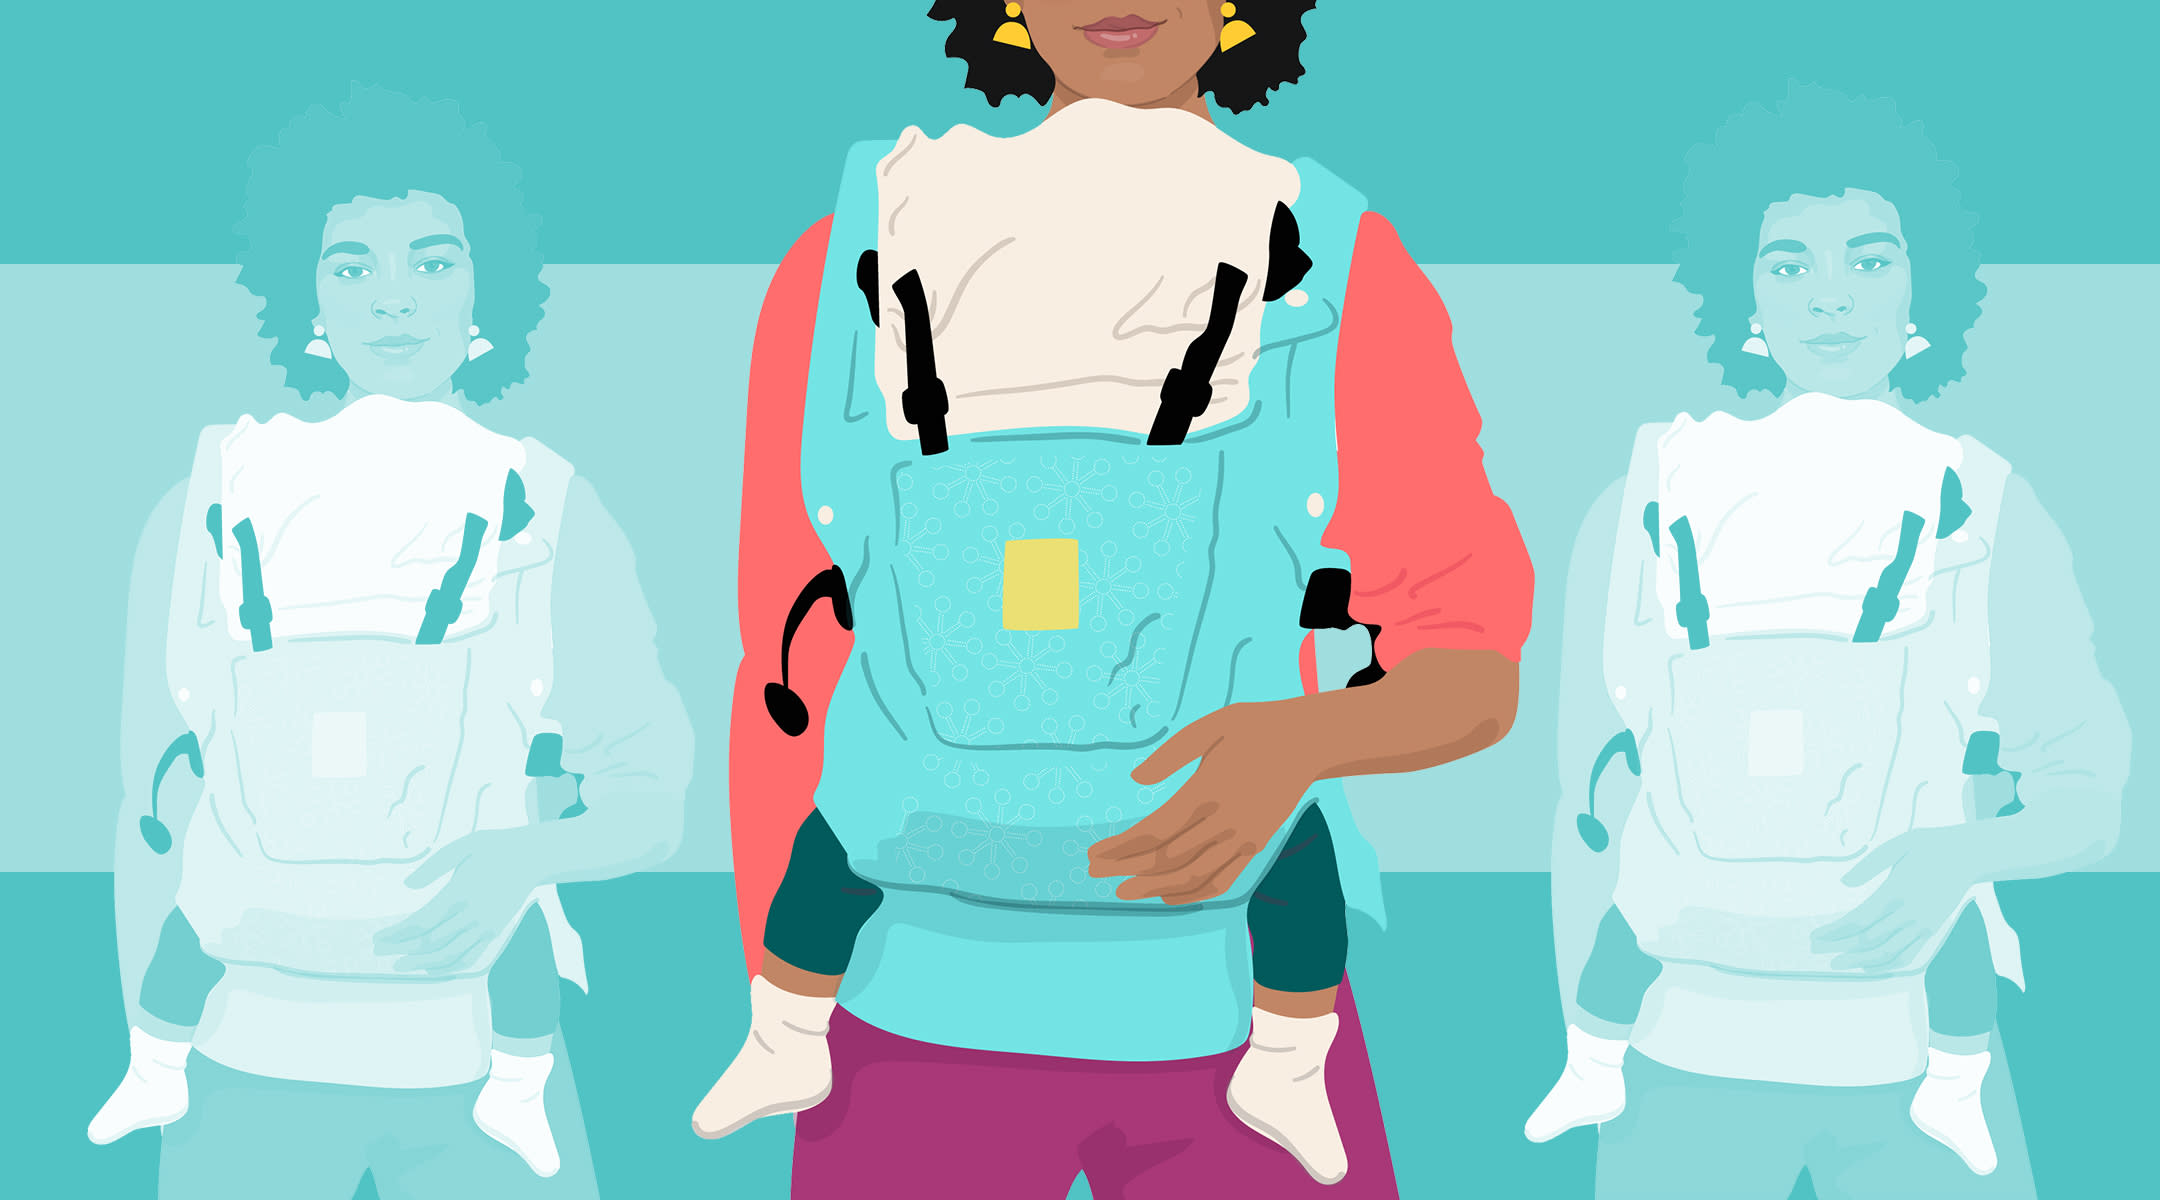 illustrated mom with baby in baby carrier